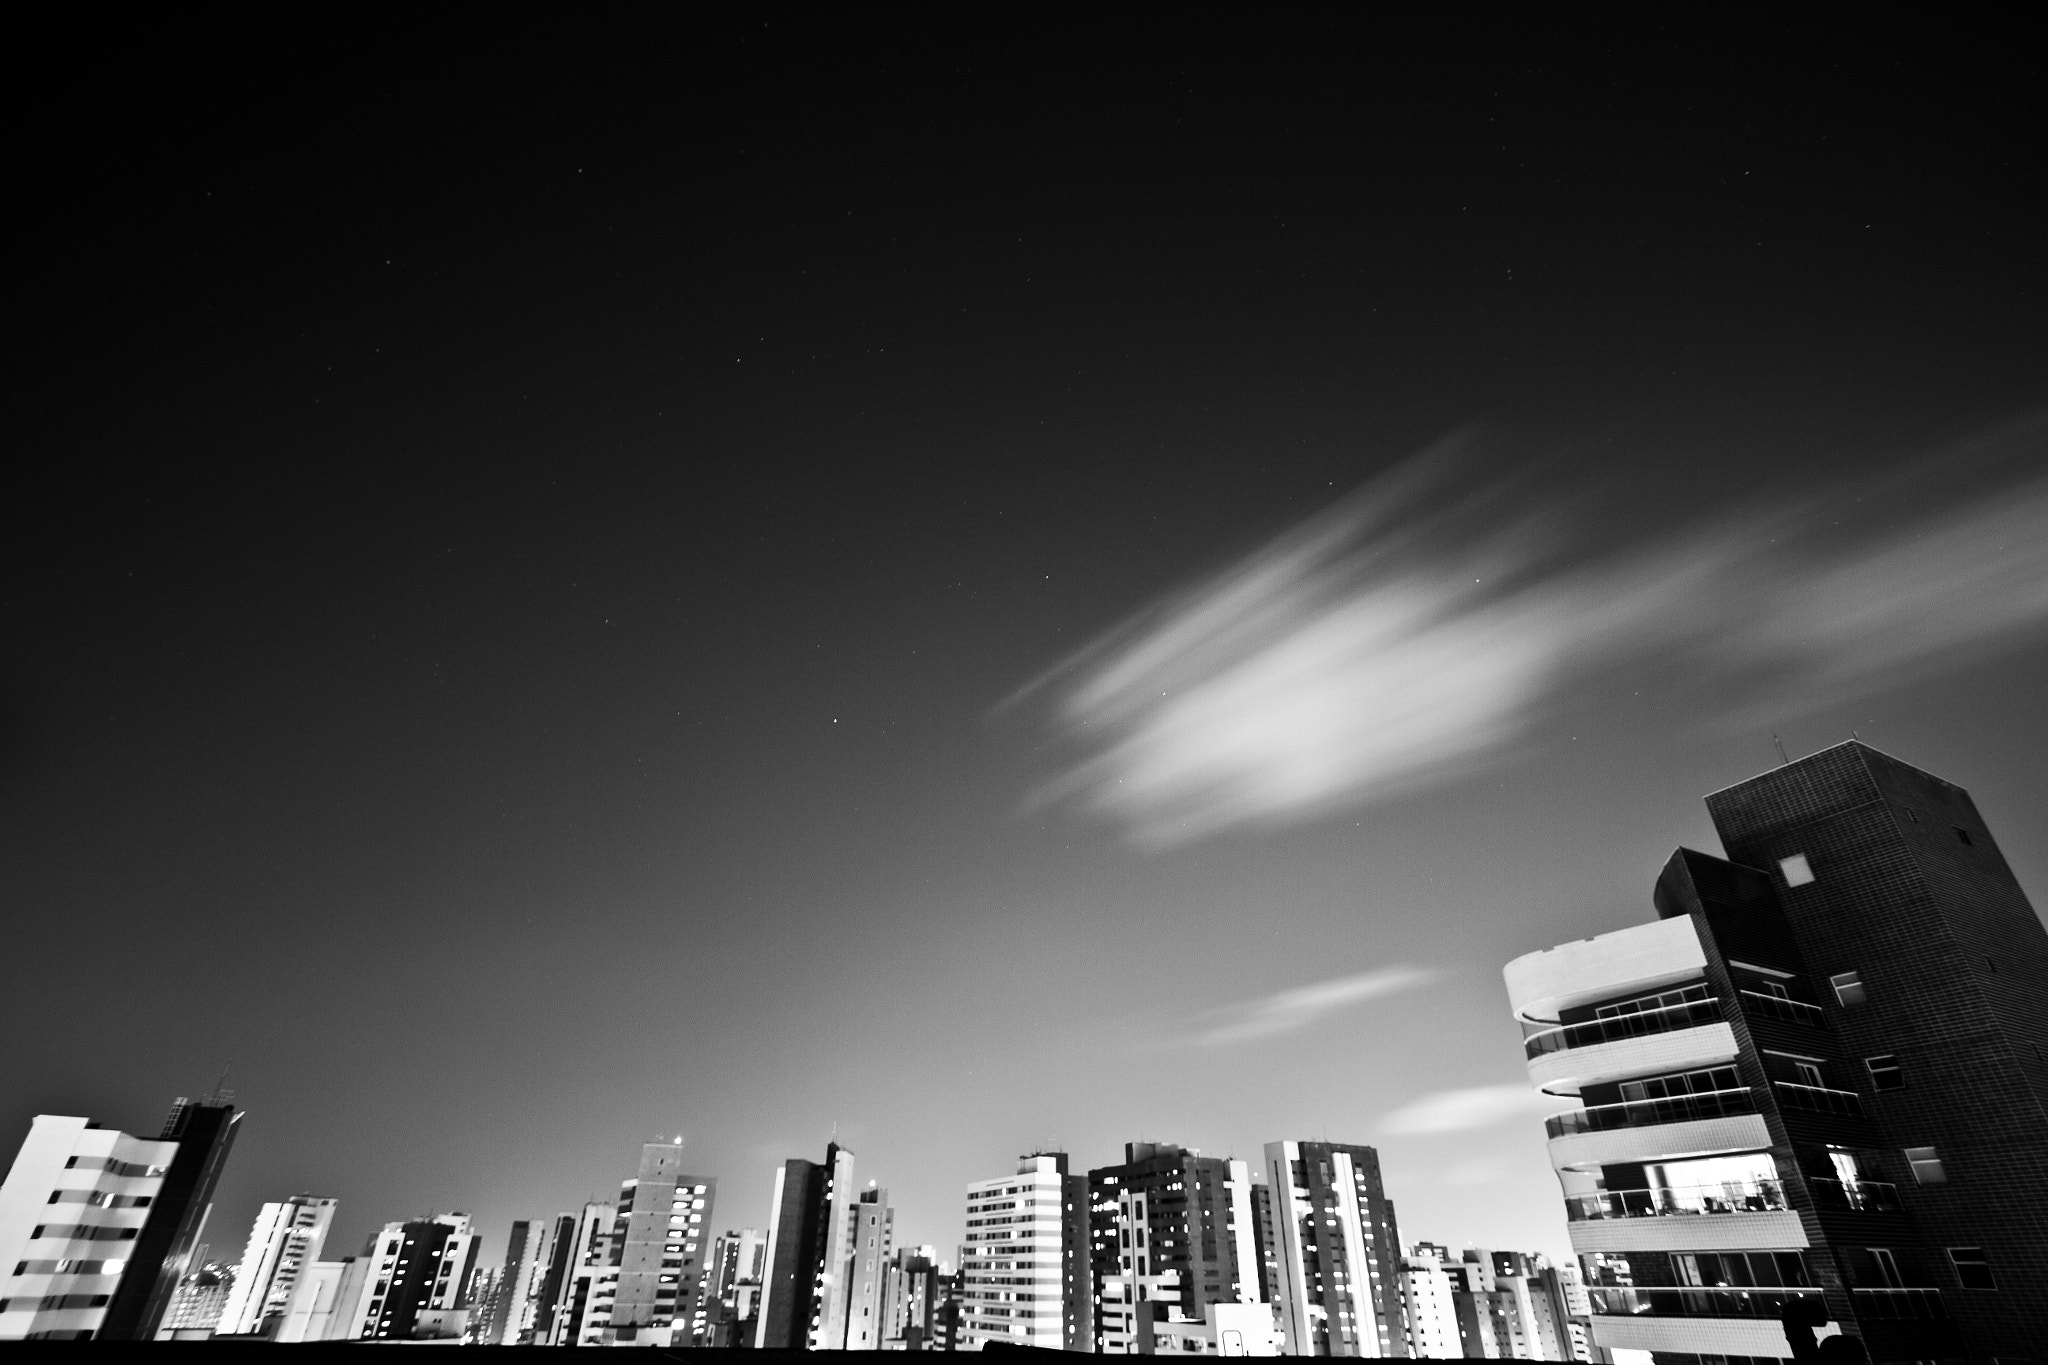 Photograph Black and White City Scape with Clouds and Stars  by A Melhor Imagem   on 500px